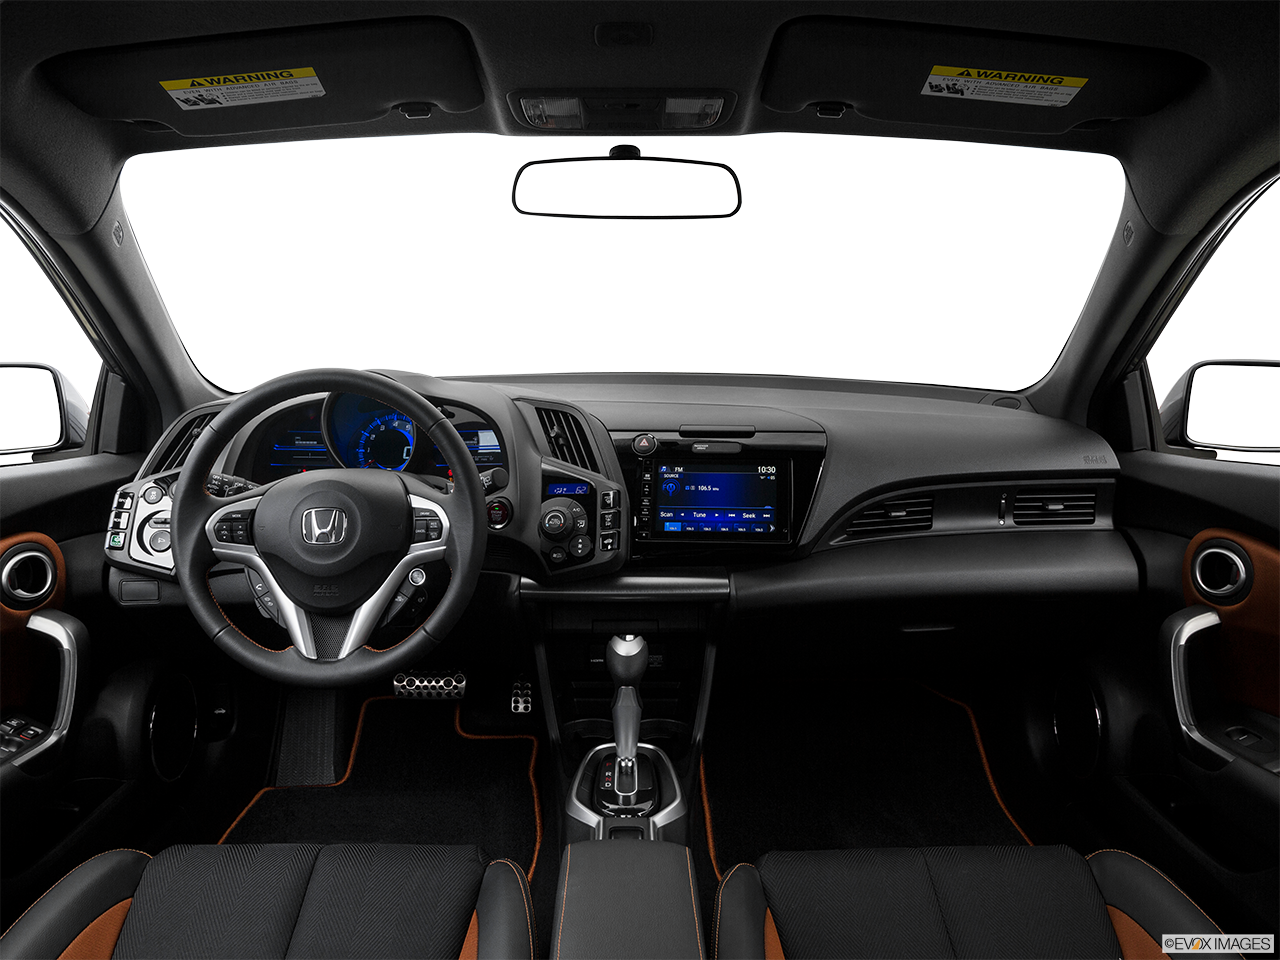 Interior View Of 2016 Honda CR-Z near San Diego